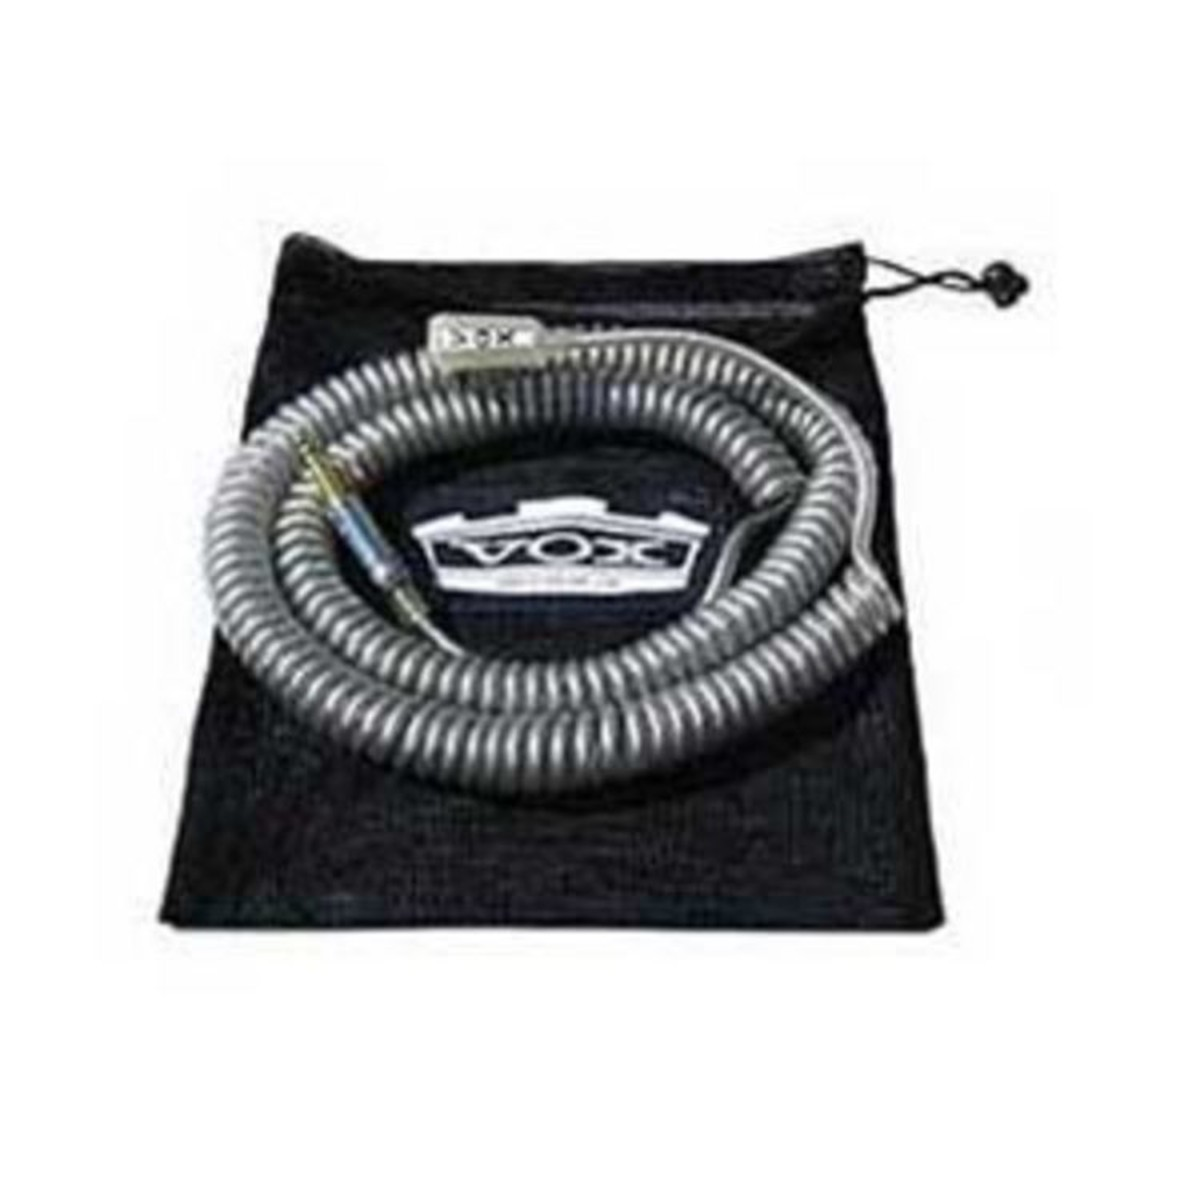 Vox Vcc Vintage Coiled Cable Quality 9m Cable Amp Mesh Bag